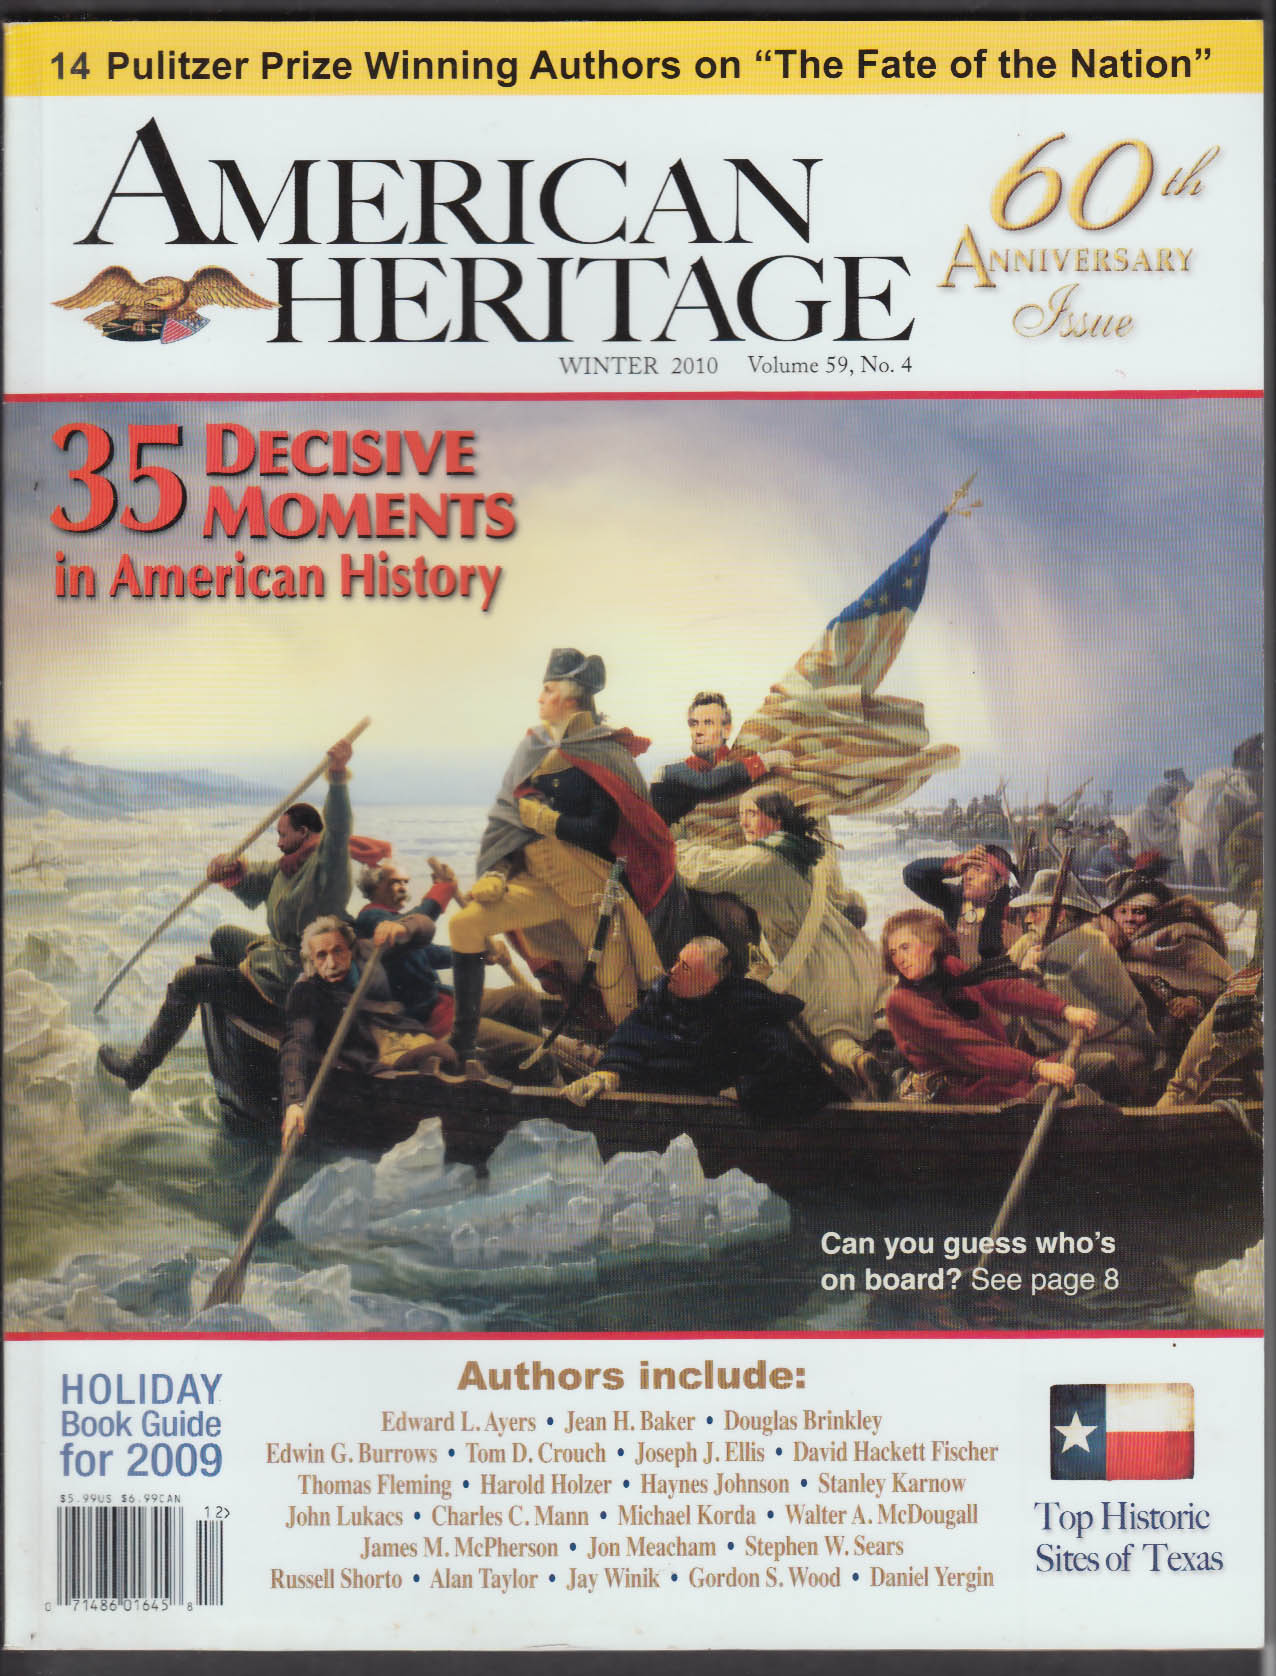 AMERICAN HERITAGE Special 60th Anniversary Issue Winter 2010